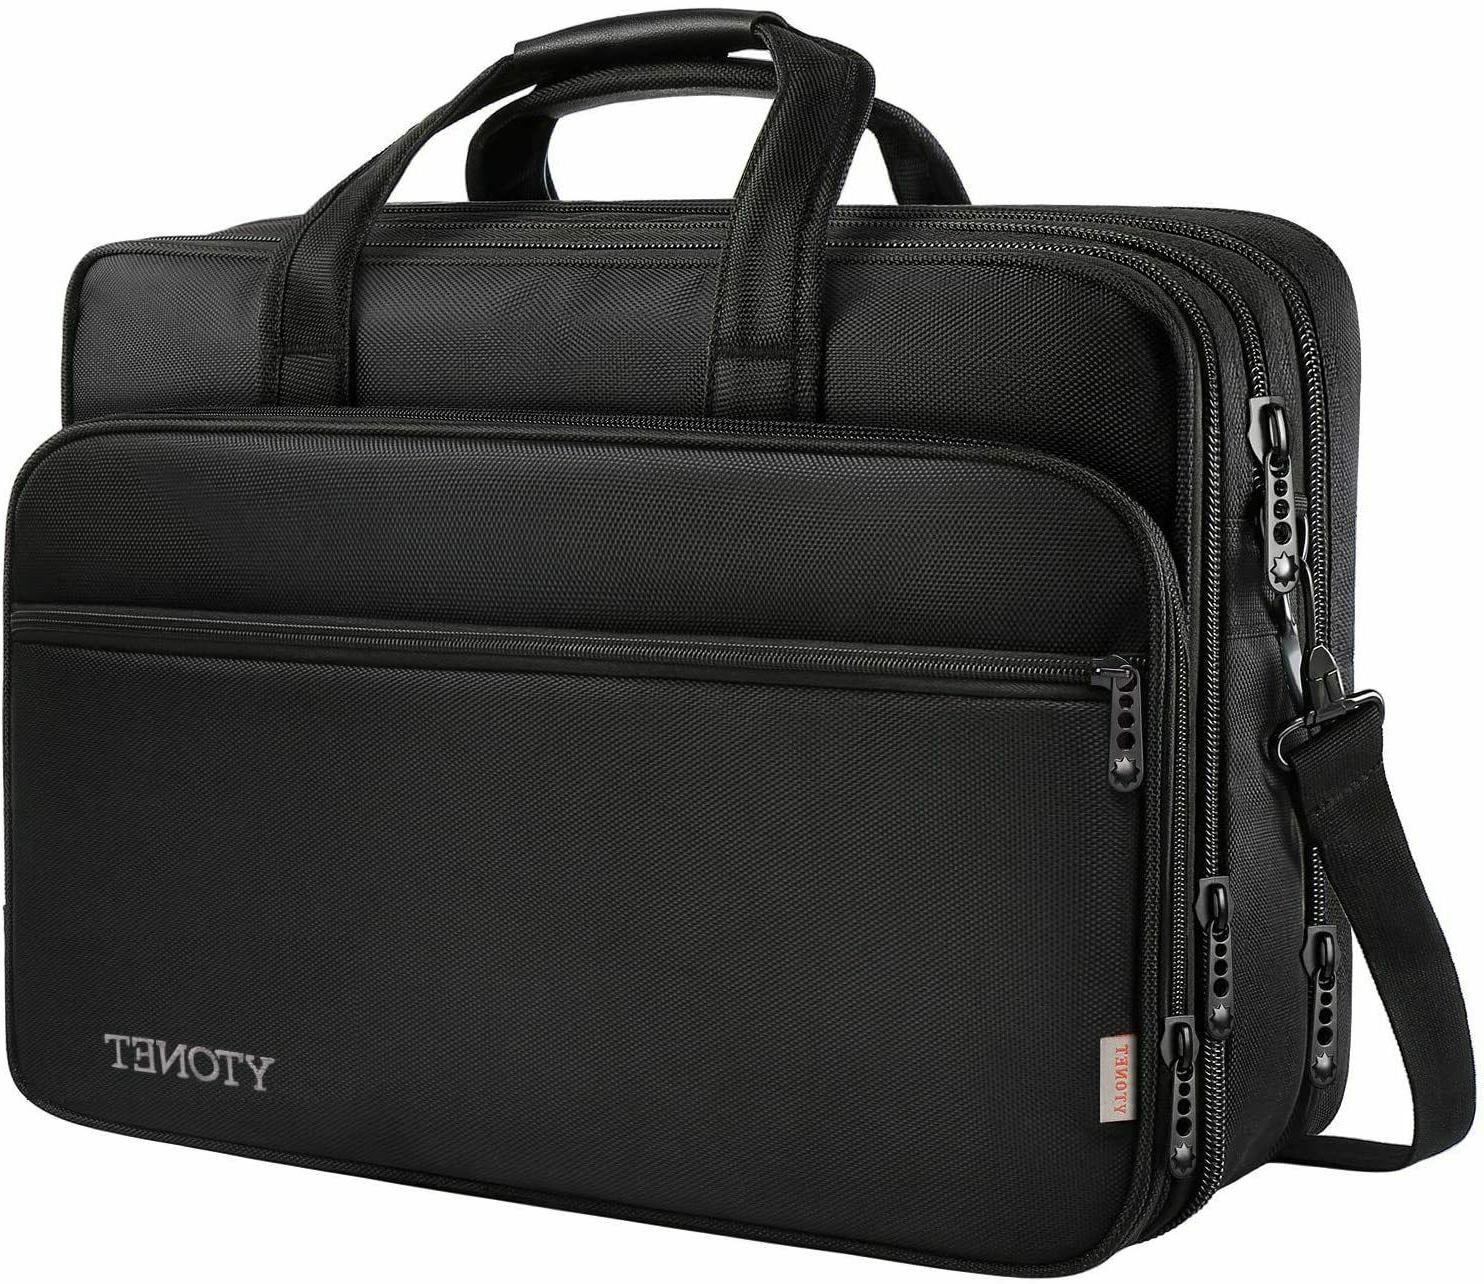 17in Laptop Bag Travel Briefcase with Organizer Expandable W